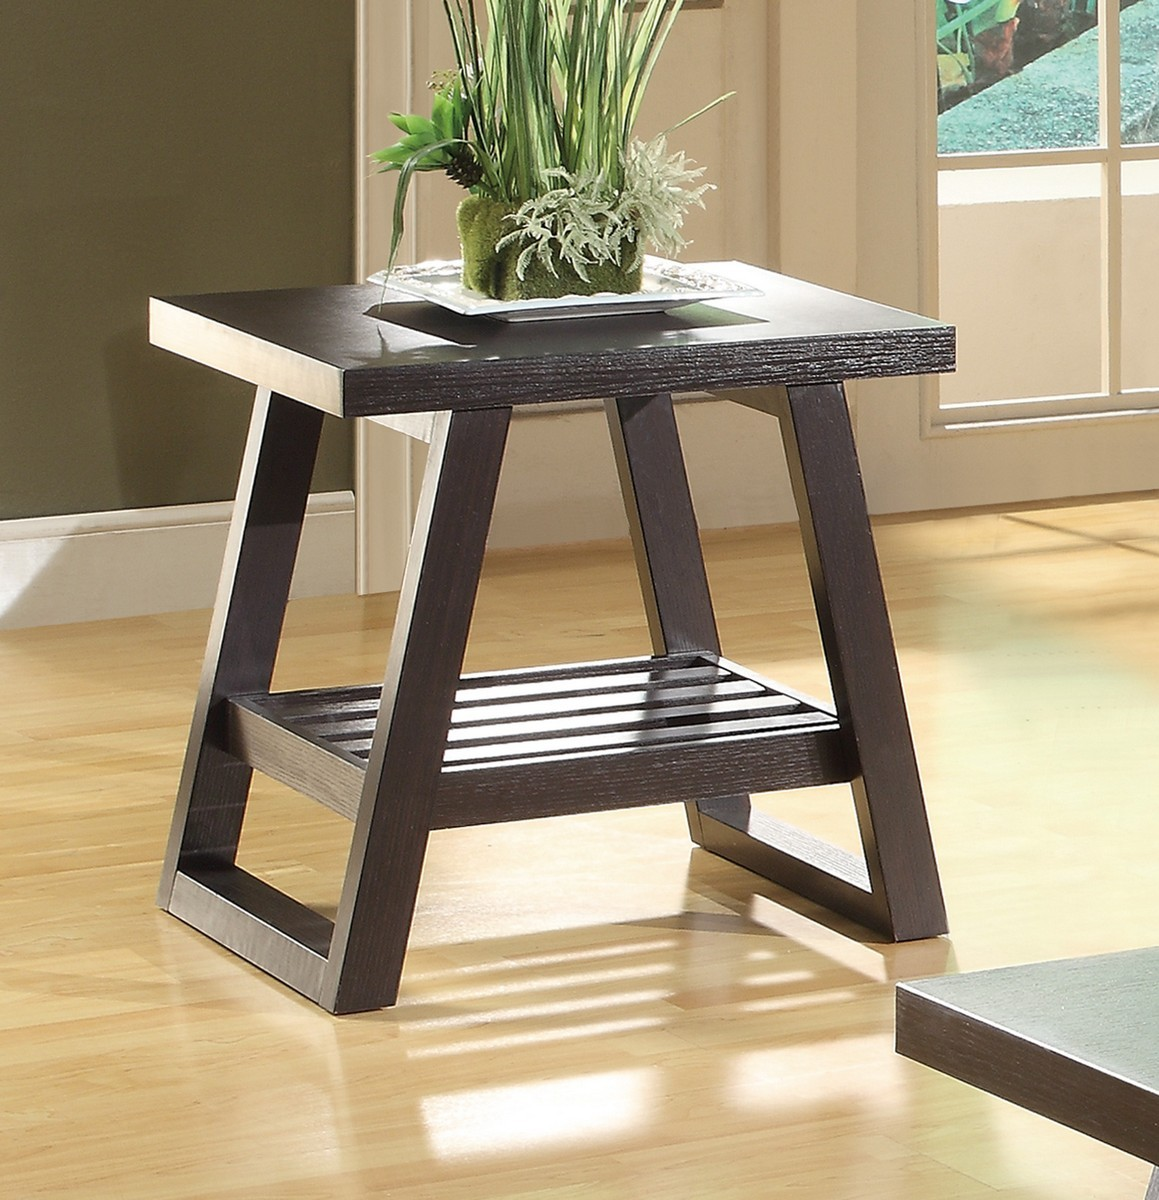 Cappuccino End Table with Slatted Bottom Shelf